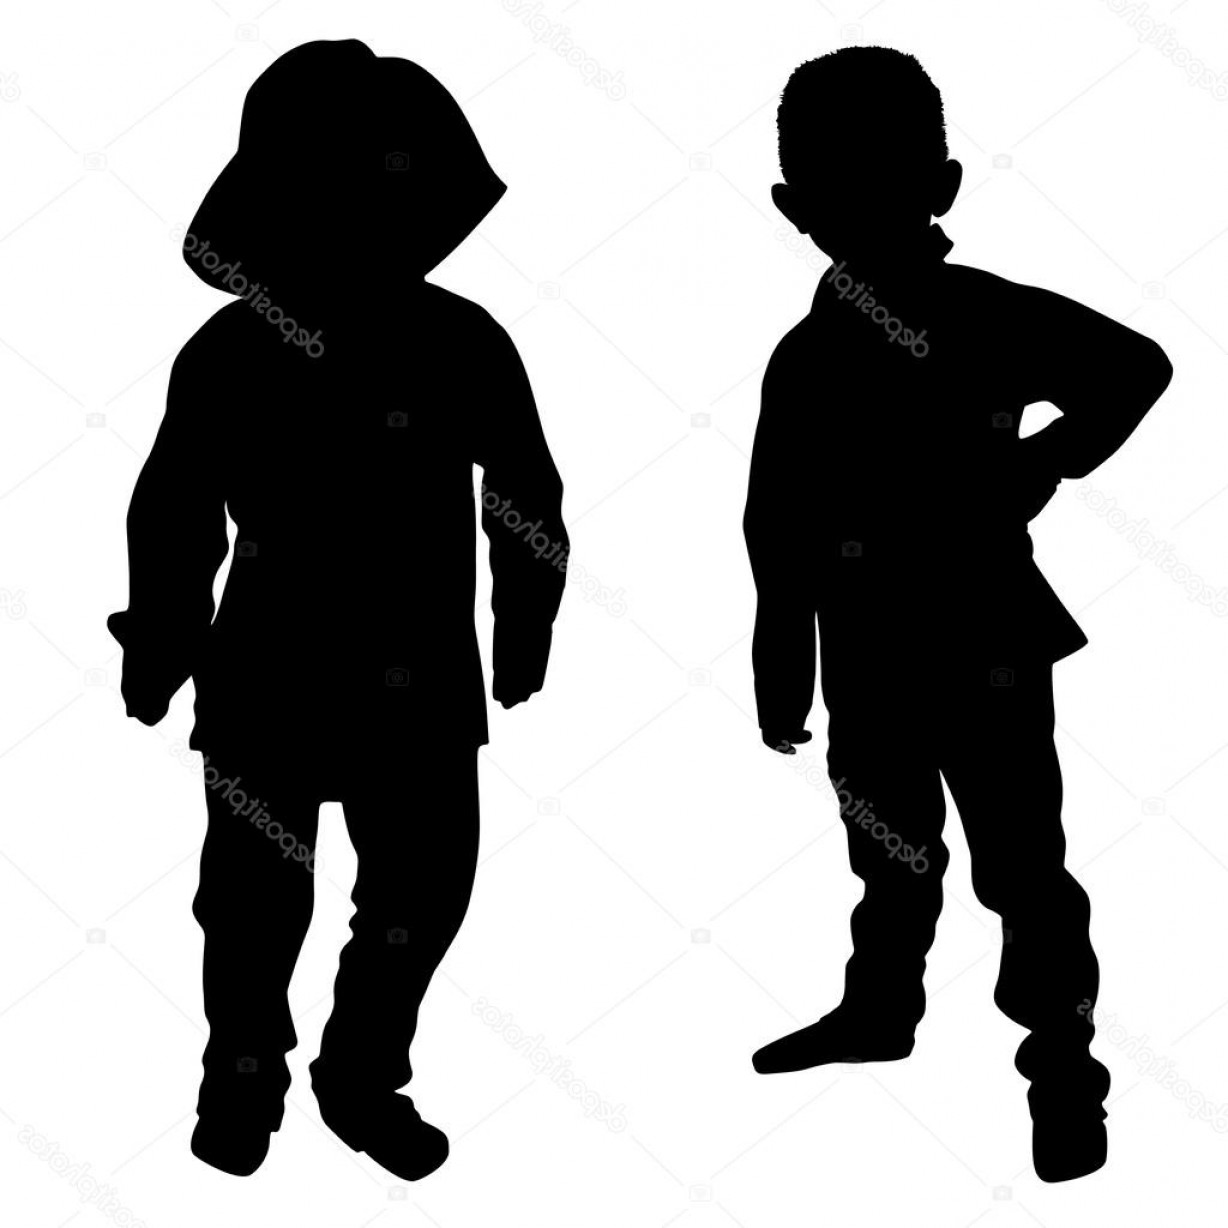 Little Boy Silhouette Vector: Stock Illustration Silhouettes Of Two Little Boys